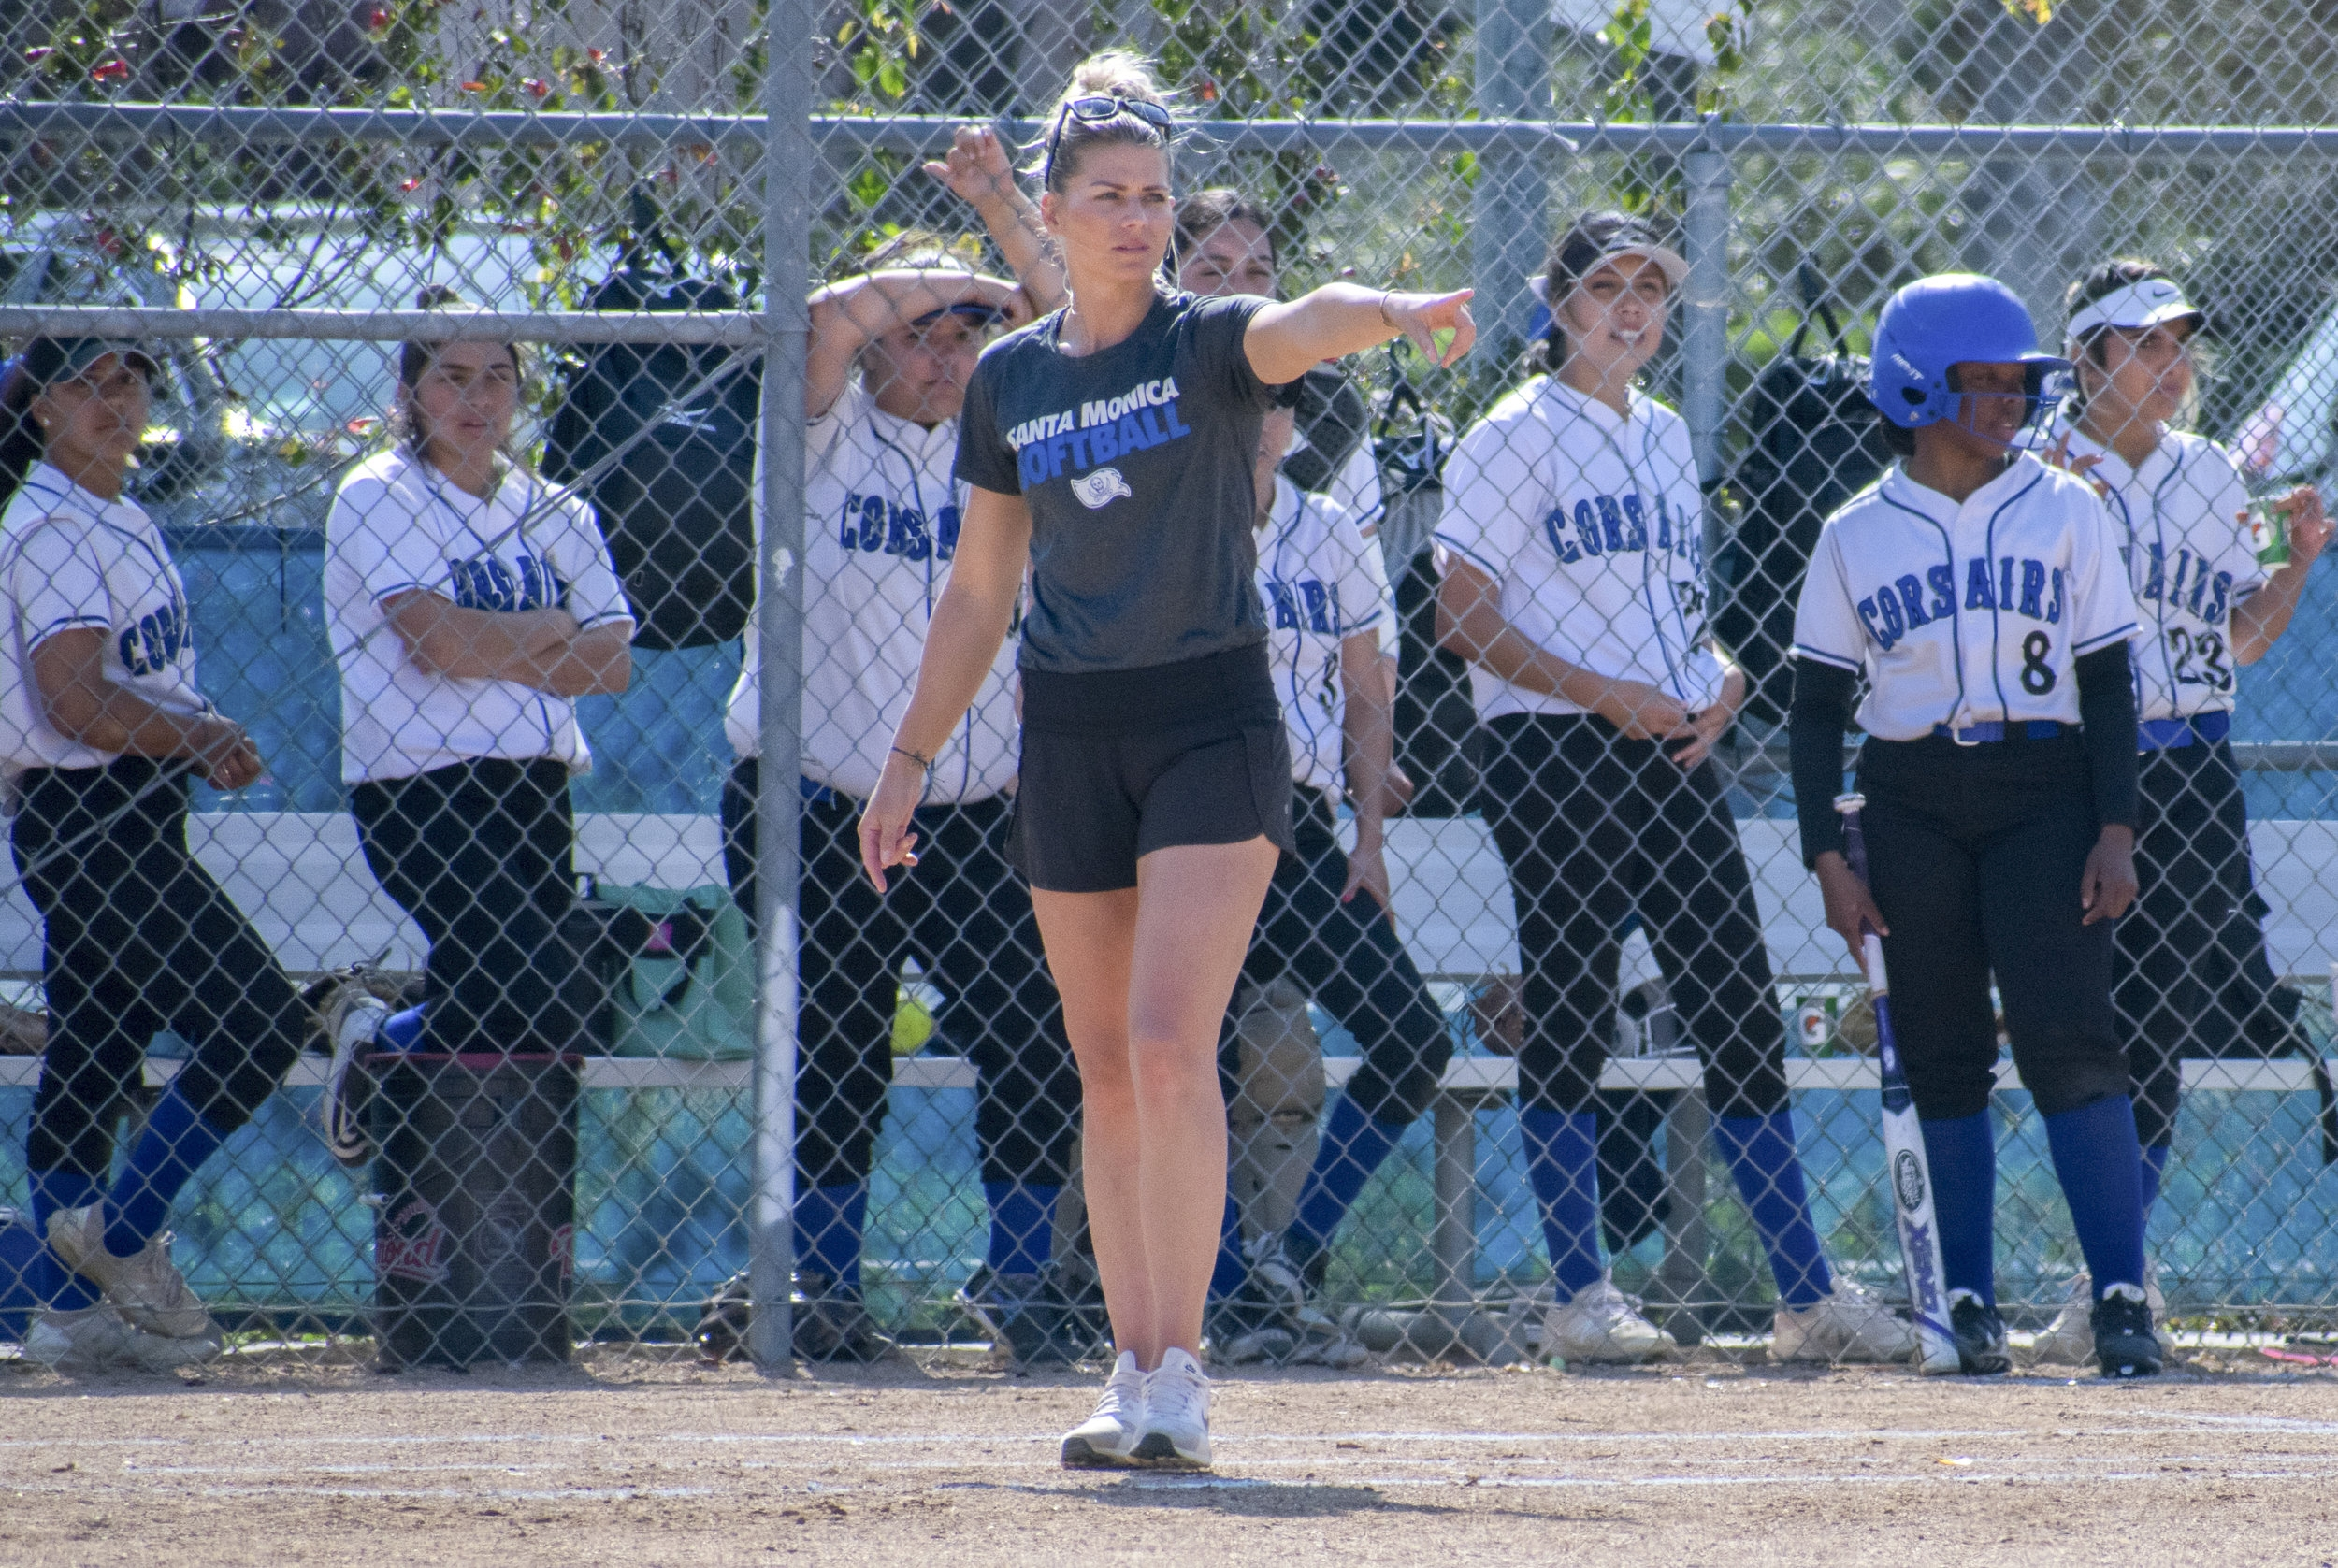 Assistant coach Sam Sheeley gives direction as the Santa Monica Corsairs look on from the dugout during a softball game against the Cuesta College Cougars on Tuesday, April 4 at the John Adams Middle School Field in Santa Monica, California. It was a close 10-inning game, which ended in a 6-5 loss for the Corsairs. (Ethan Lauren/Corsair Photo)